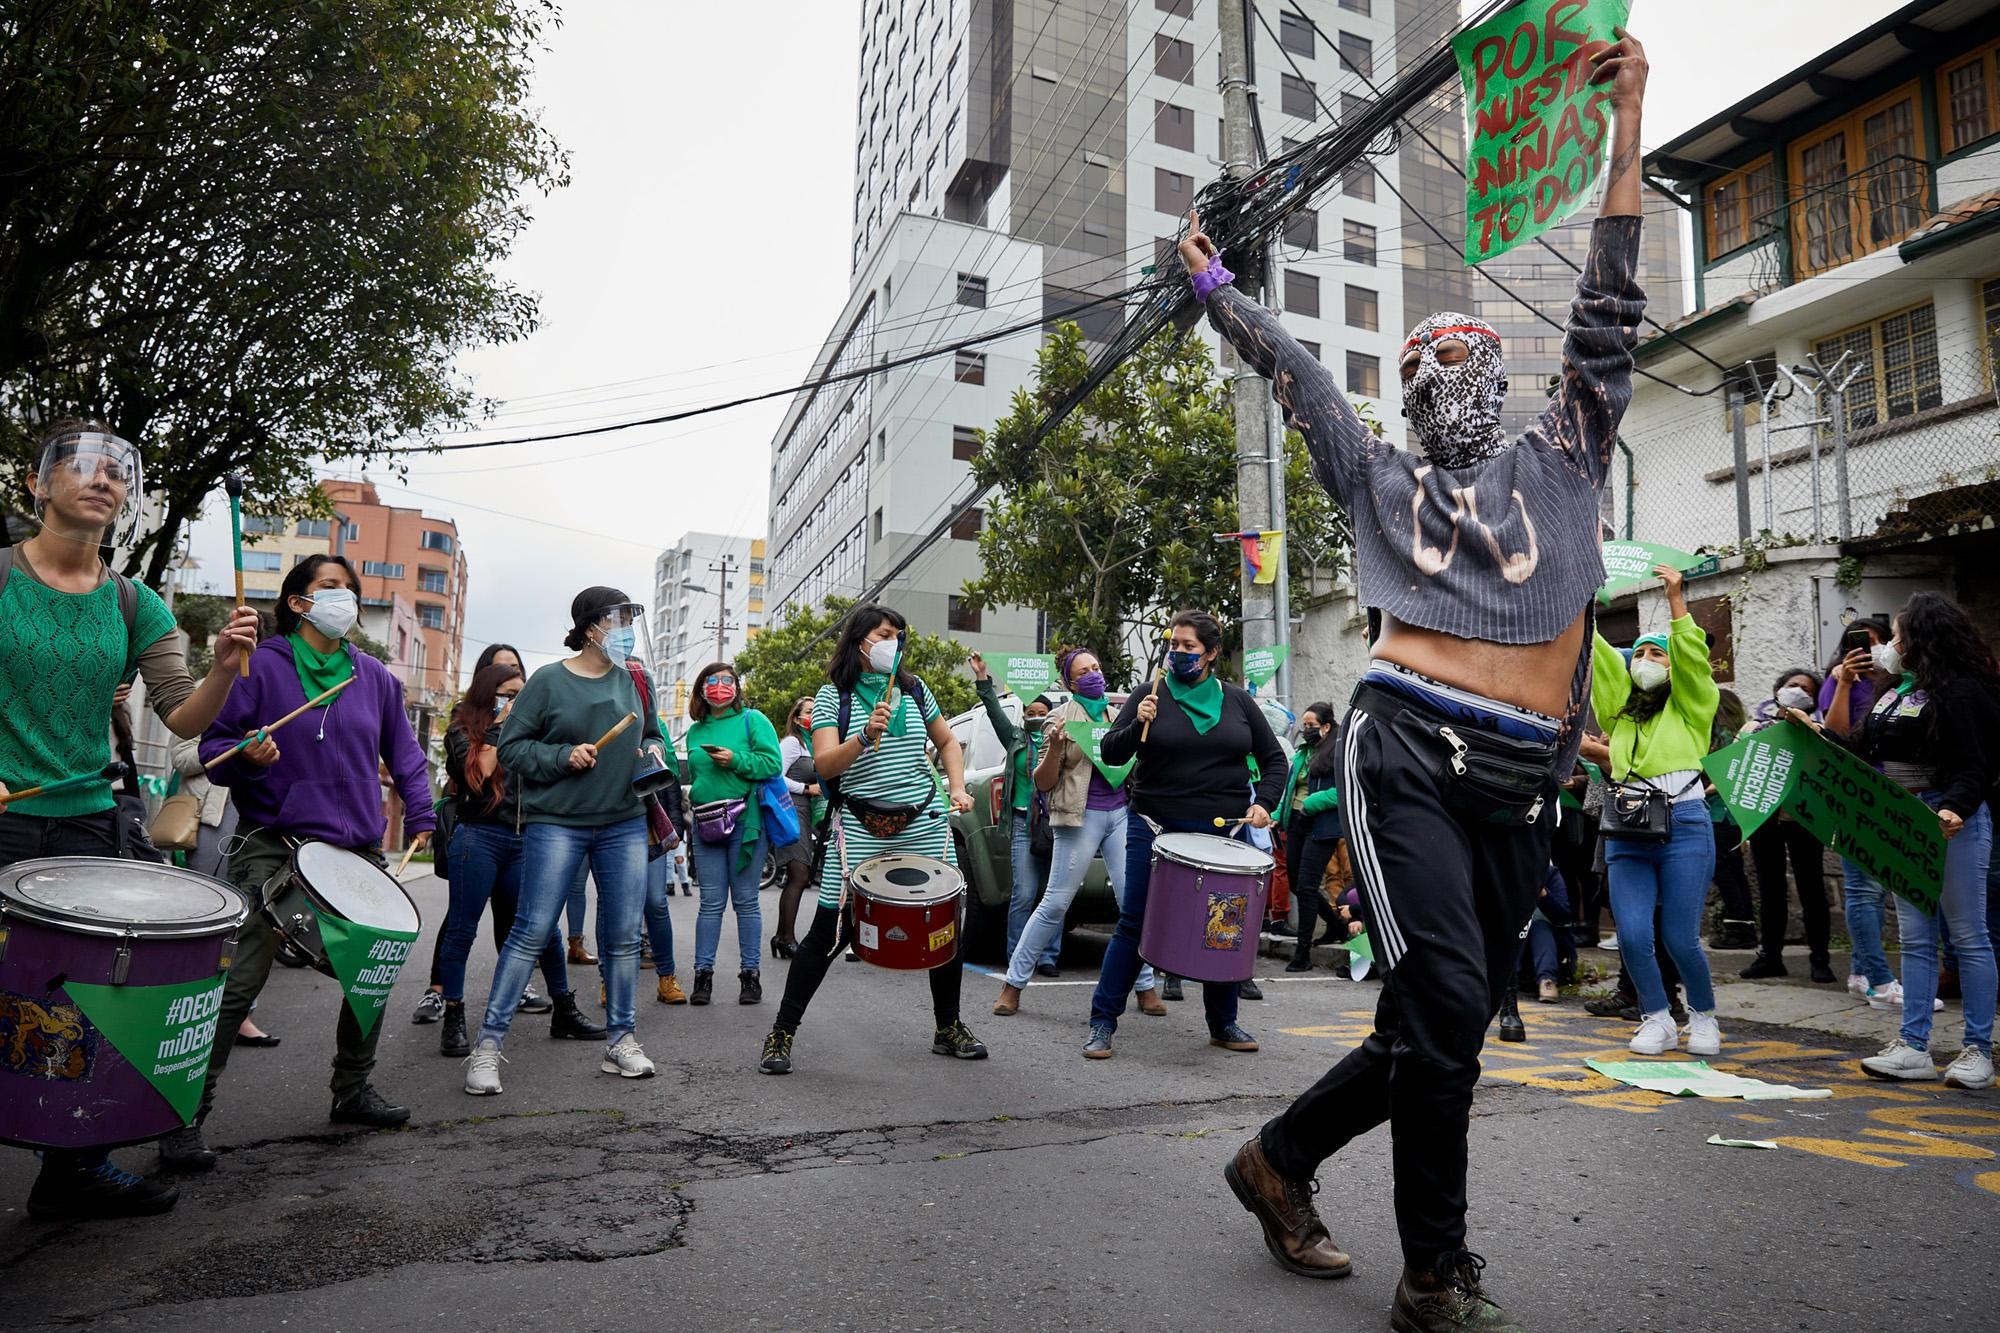 Women and trans people dance reggaeton while waiting for the Constitutional Court ruling on decriminalization of abortion for rape, in the back anti-rights groups pray loudly.